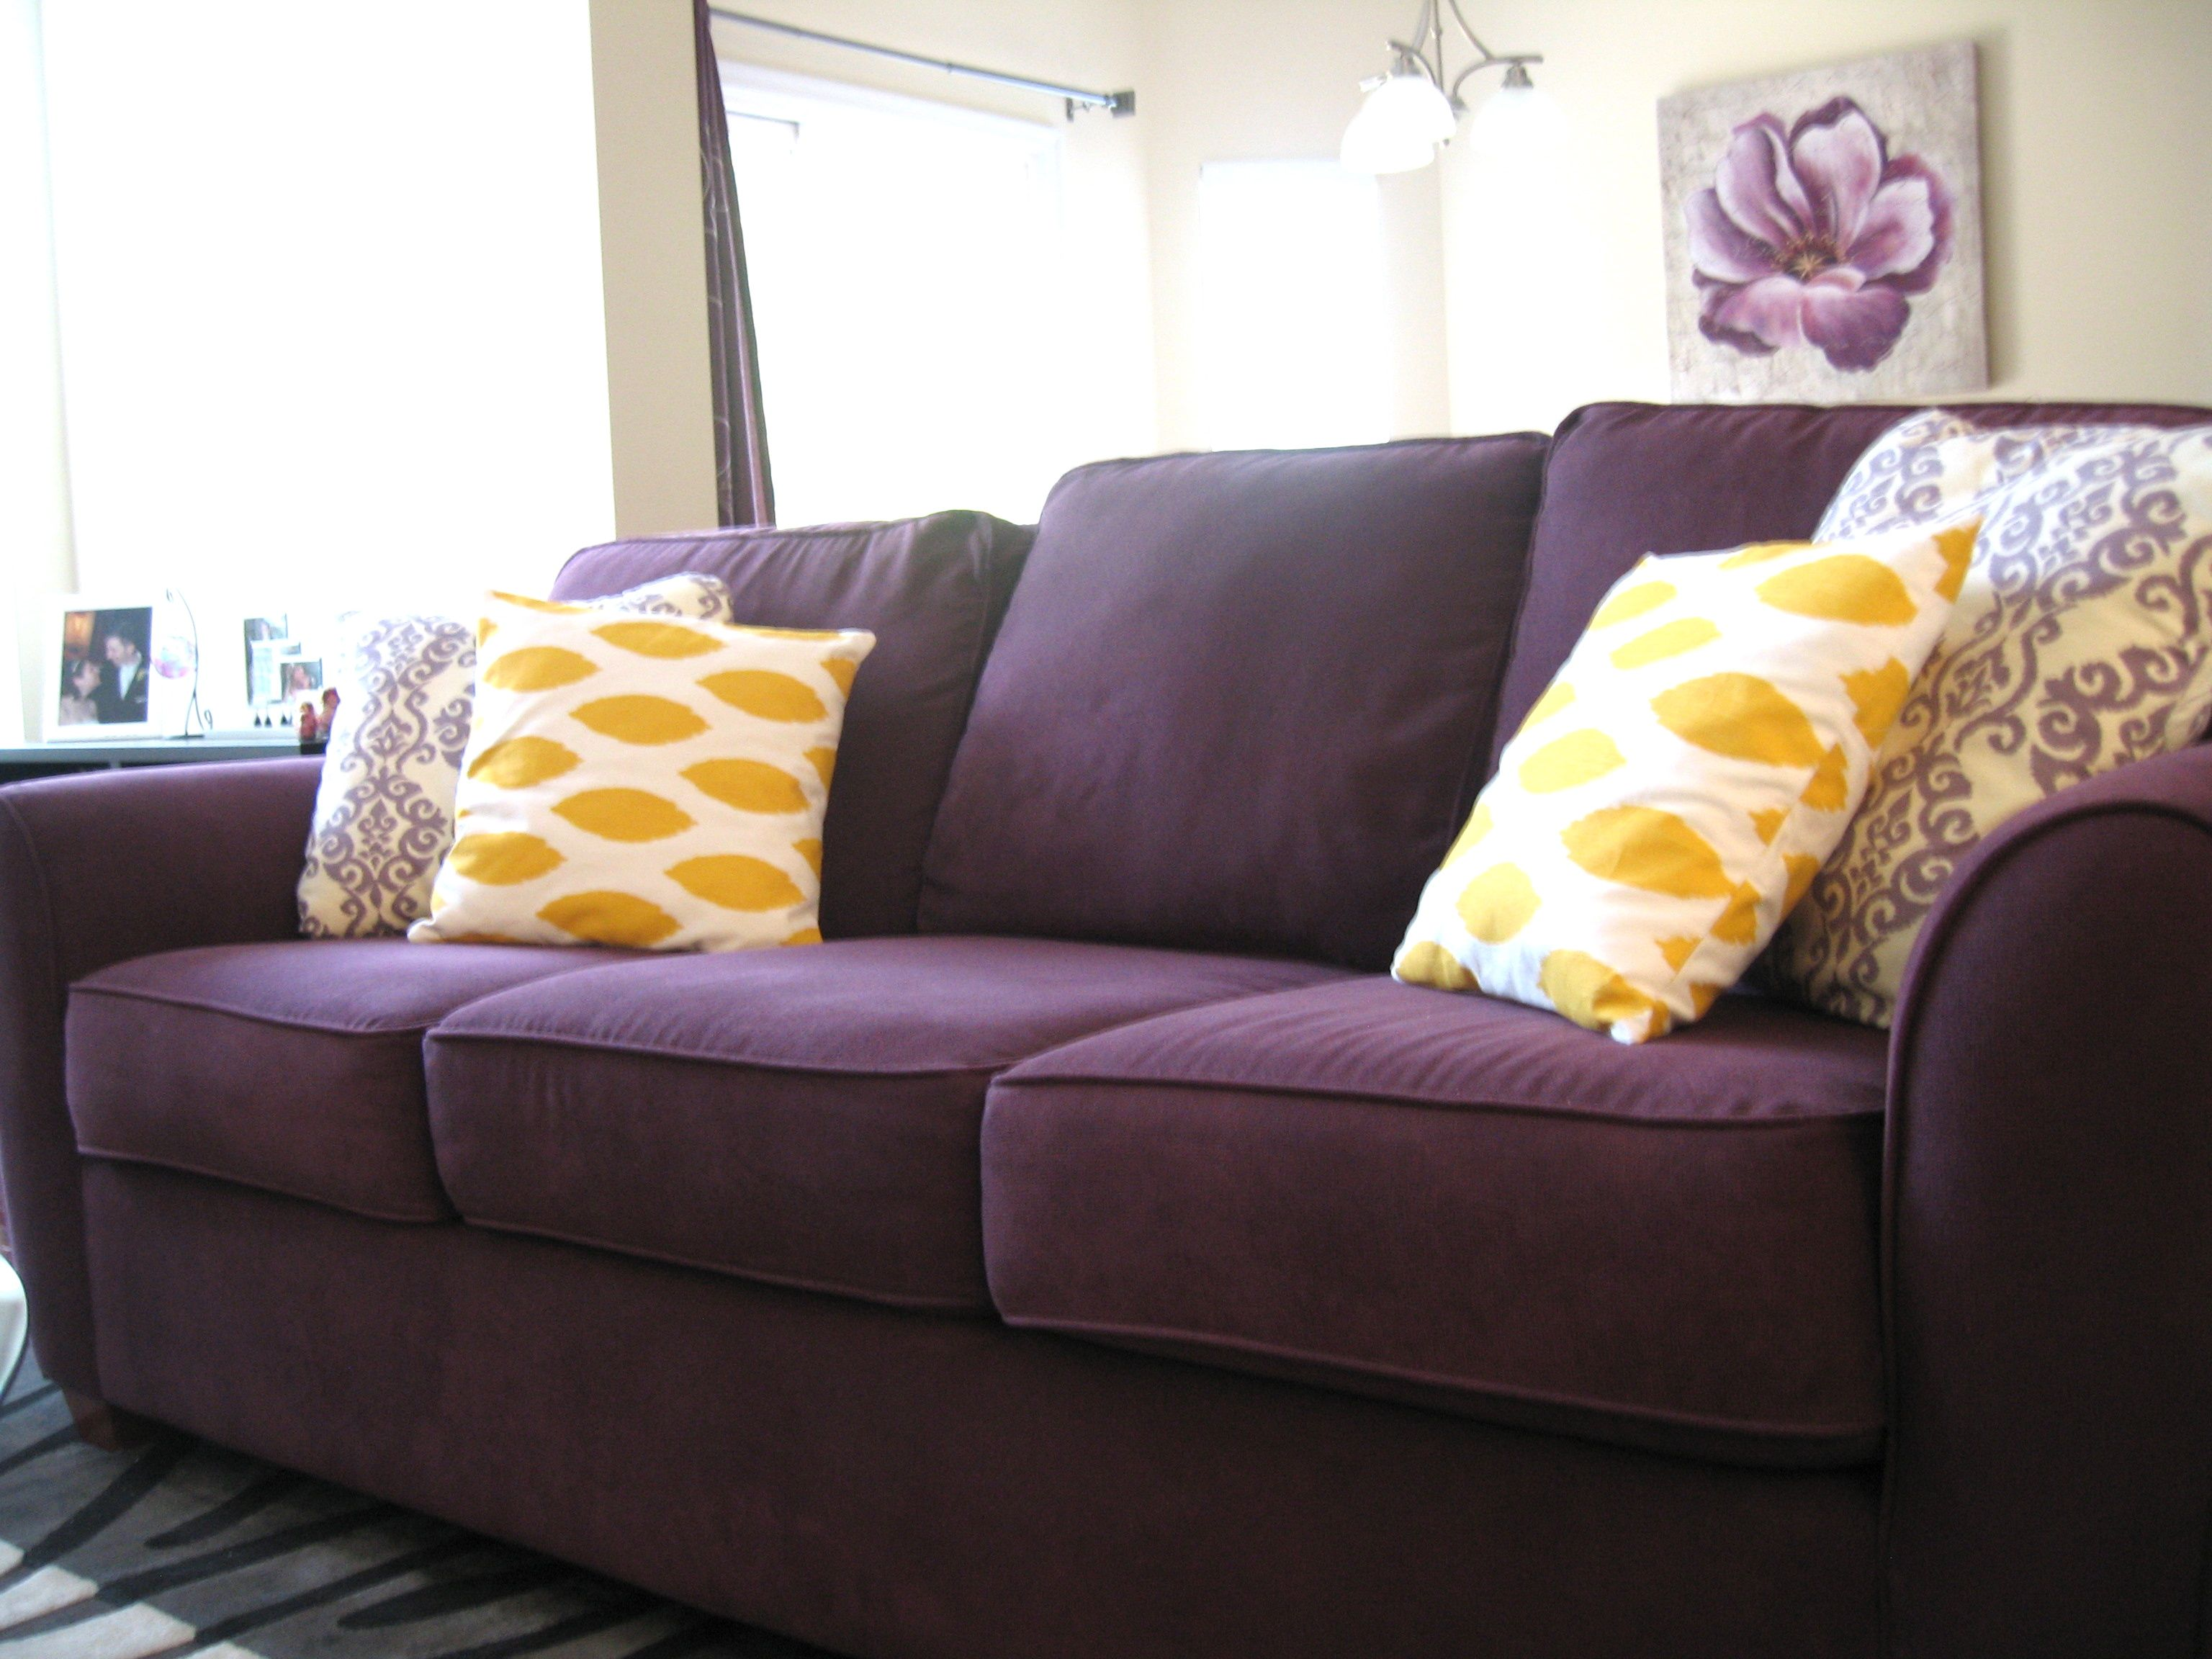 Navy blue and yellow decorative pillows - I Love My Purple Couch But It Desperately Needs Some Throw Pillows Like This